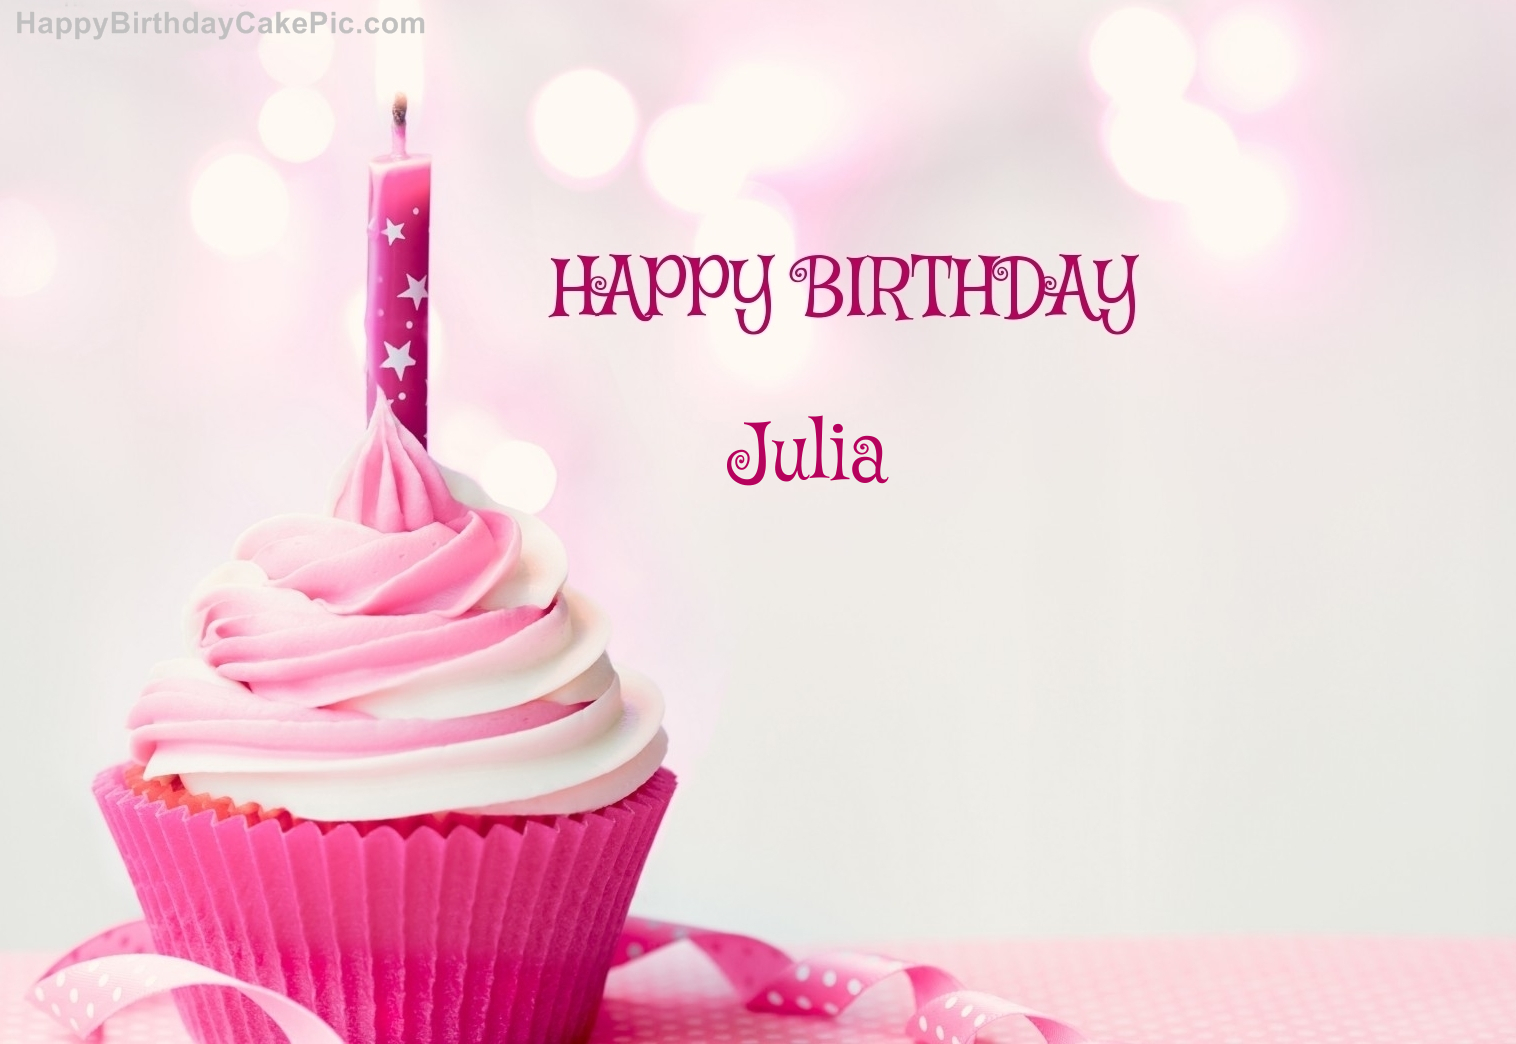 Happy Birthday Cupcake Candle Pink Cake For Julia